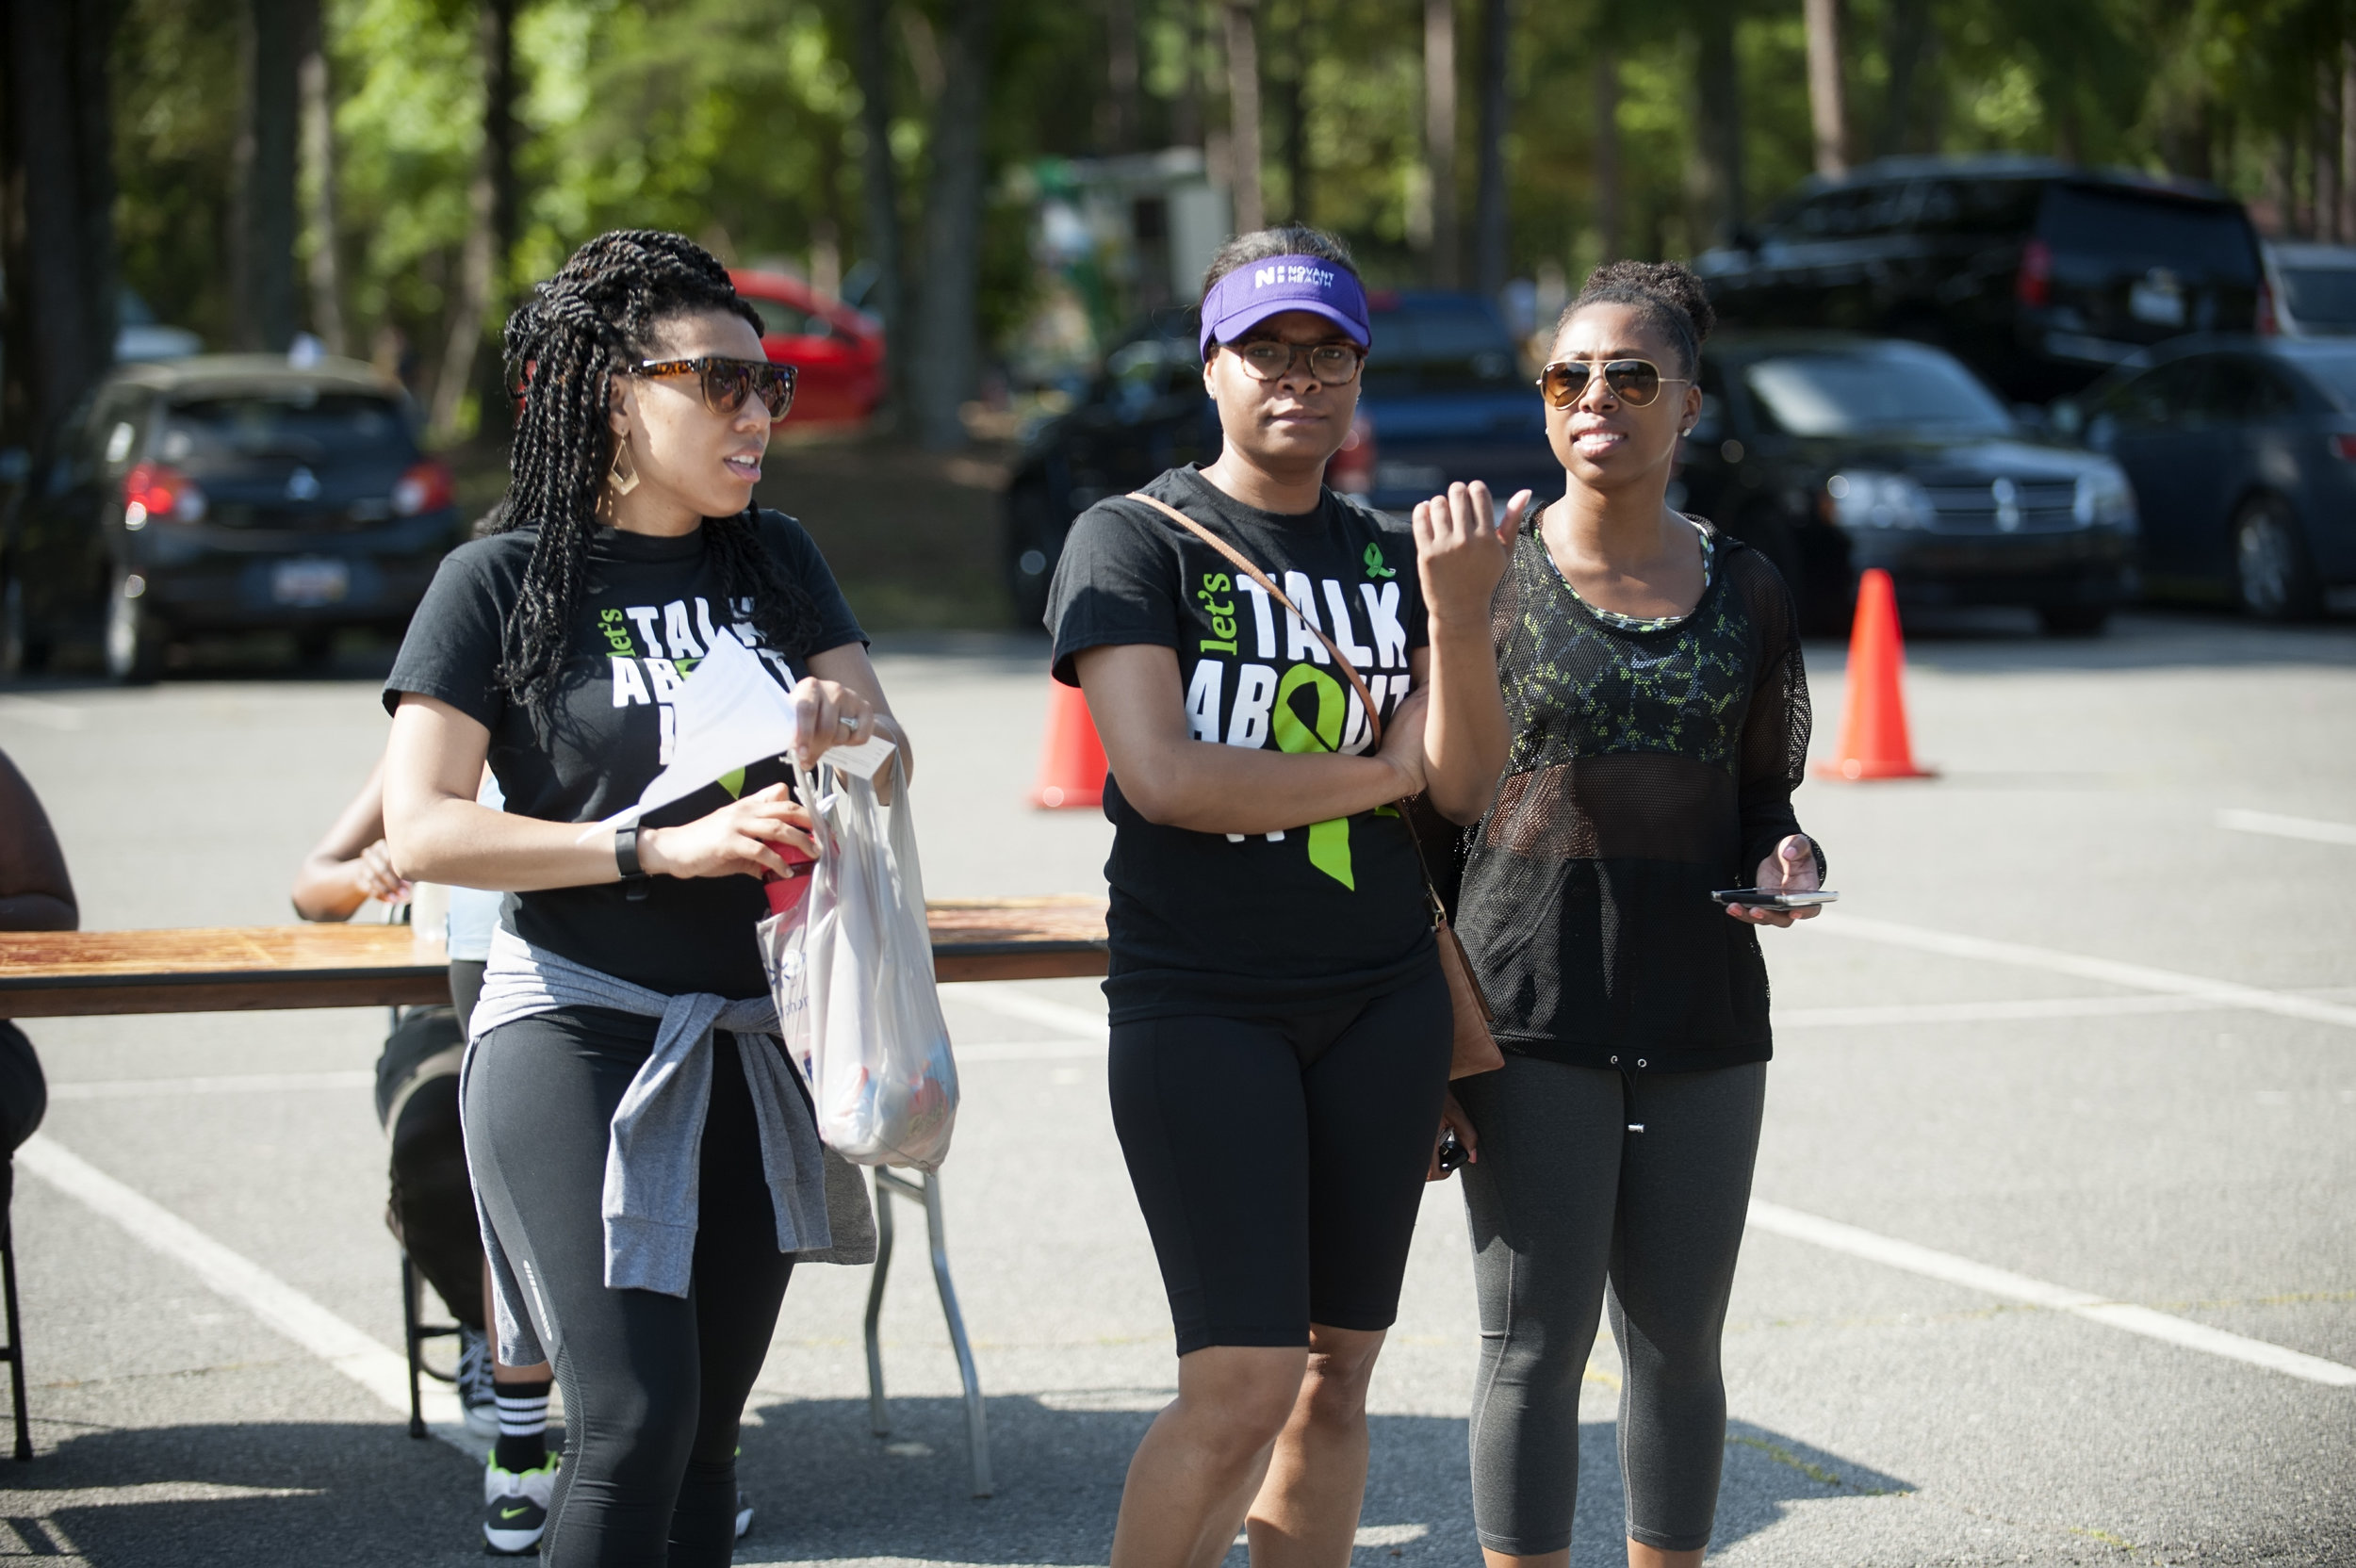 2nd Annual Let's Talk About It Mental Health Awareness Walk @ Park Rd Park 5-20-17 by Jon Strayhorn 030.jpg